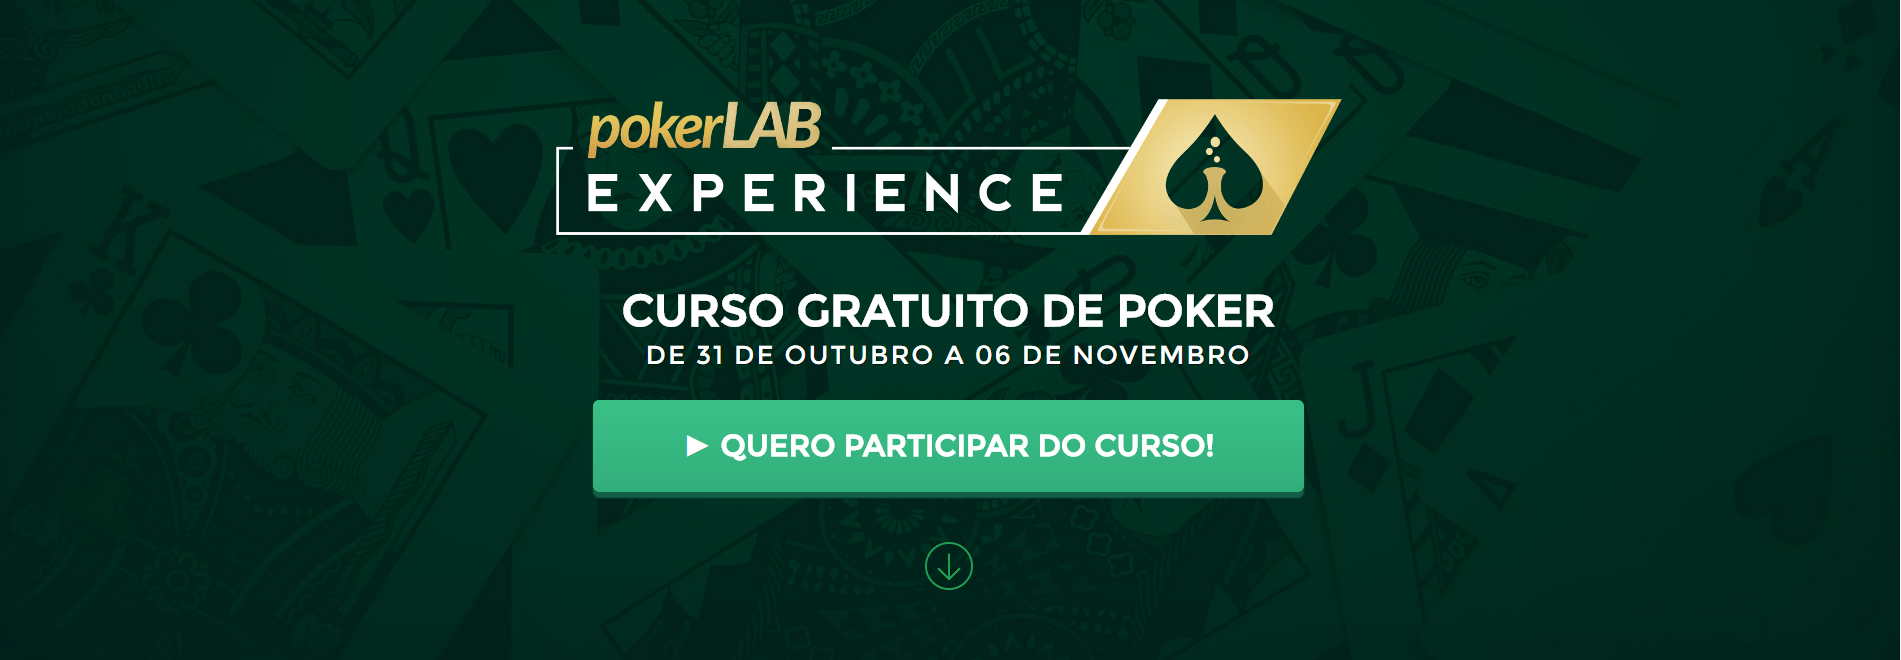 poker-lab-experience